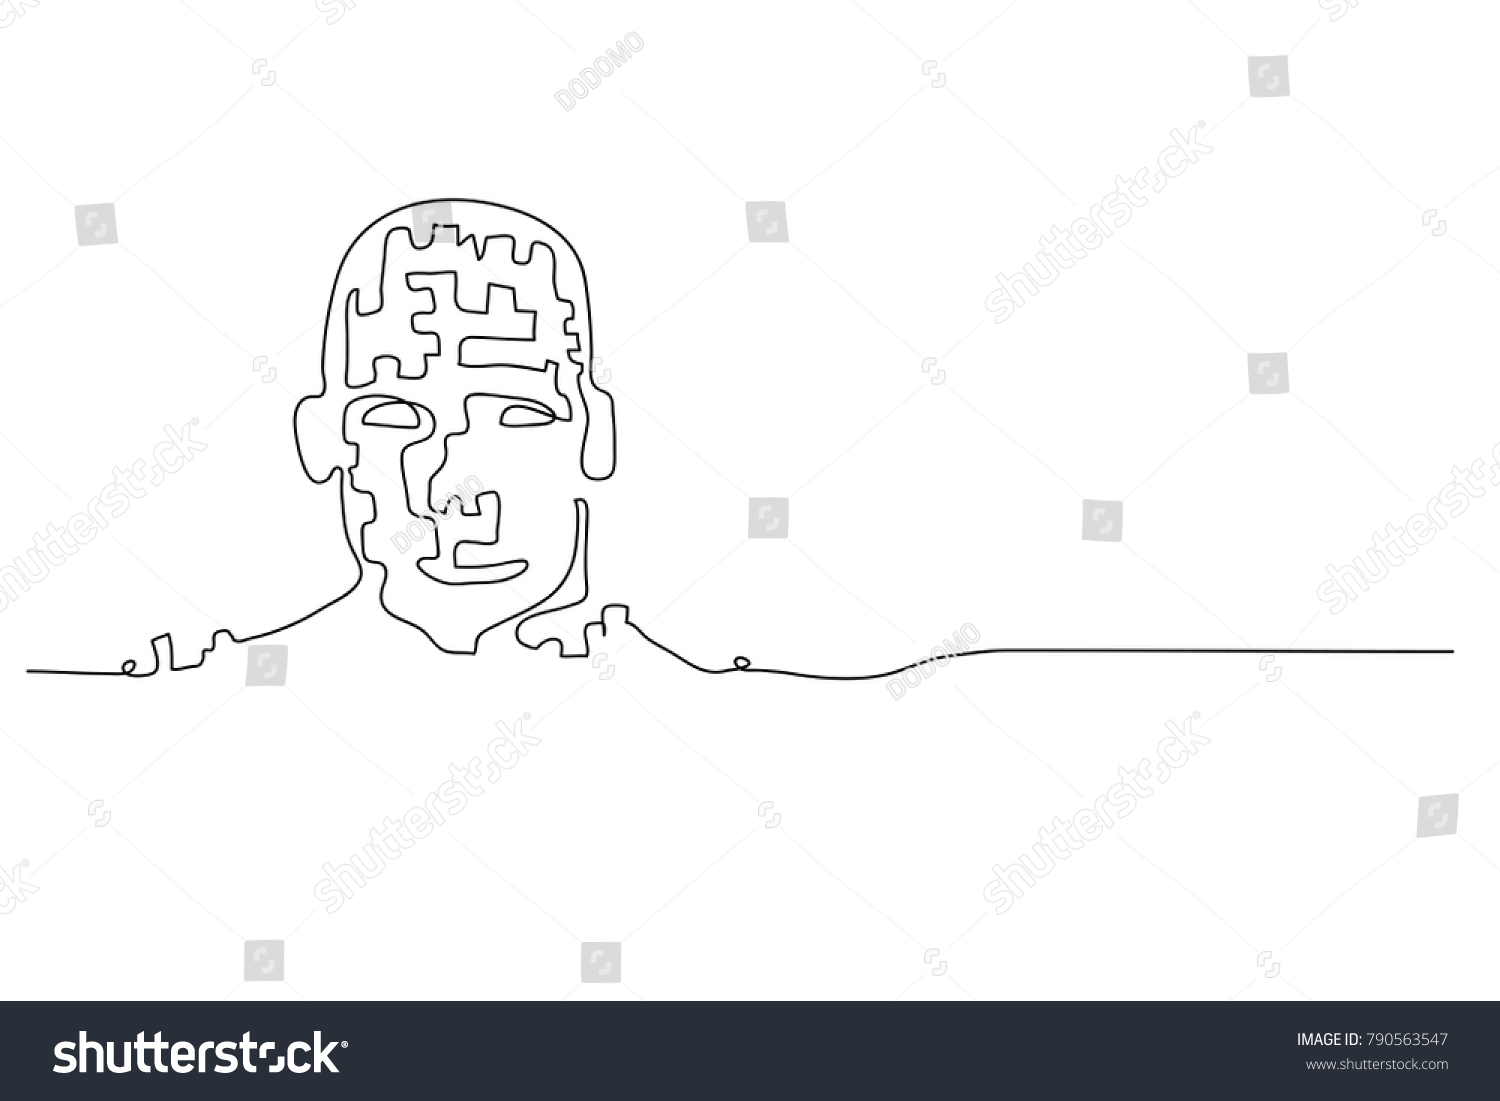 Continuous Line Drawing Face : Continuous line drawing robot brain stock vector